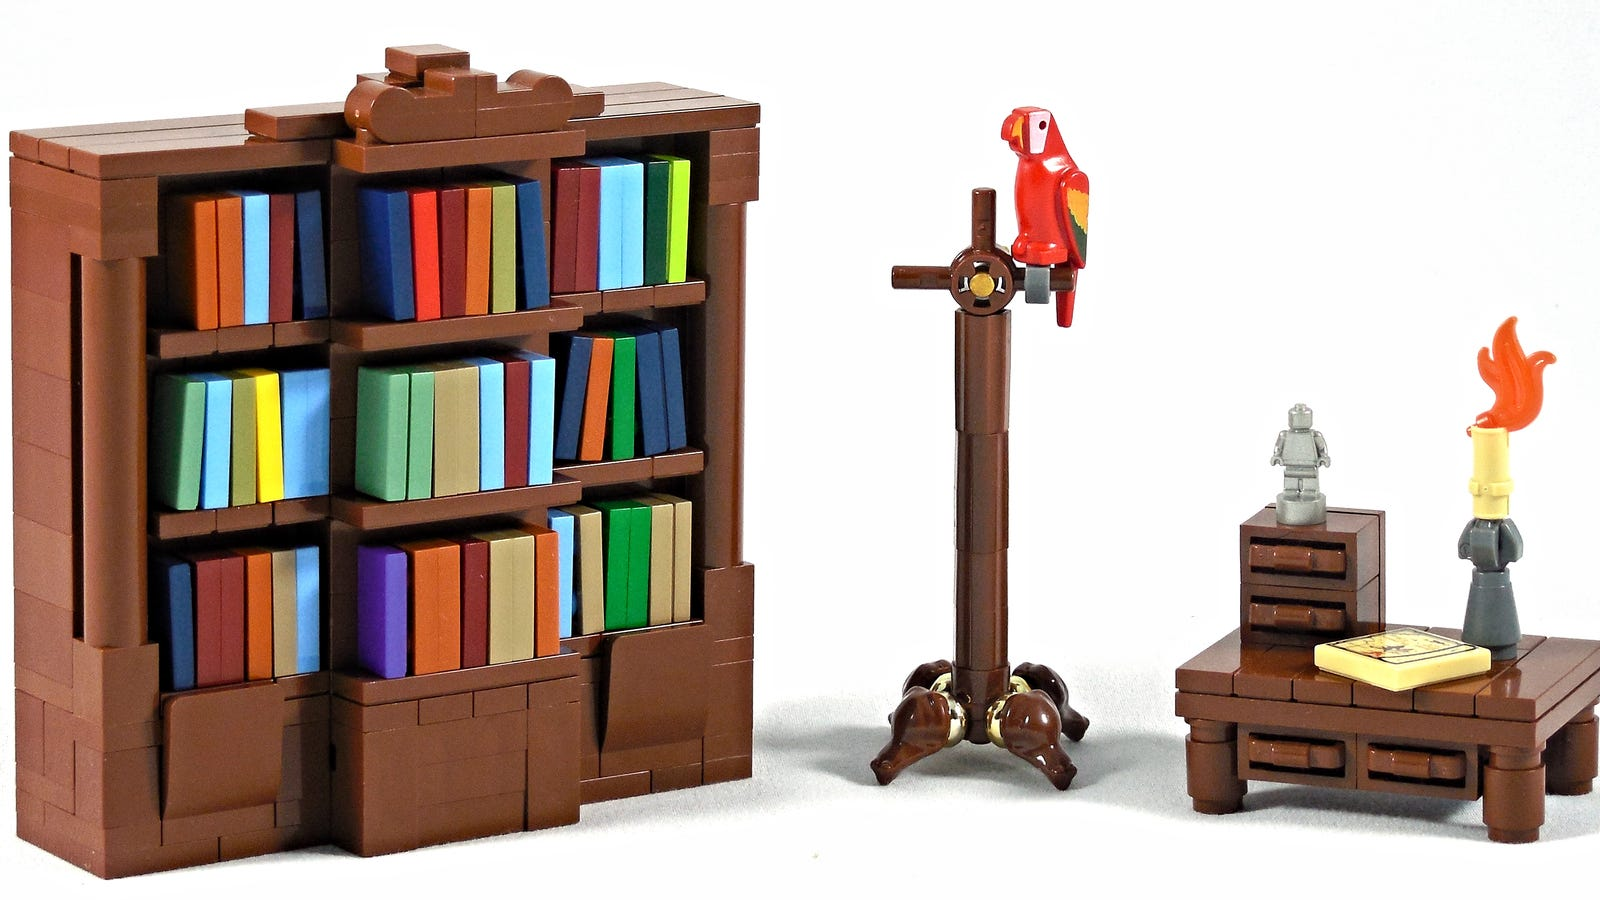 Lego Furniture Redecorate Your Lego House With This Fantastic Lego Furniture